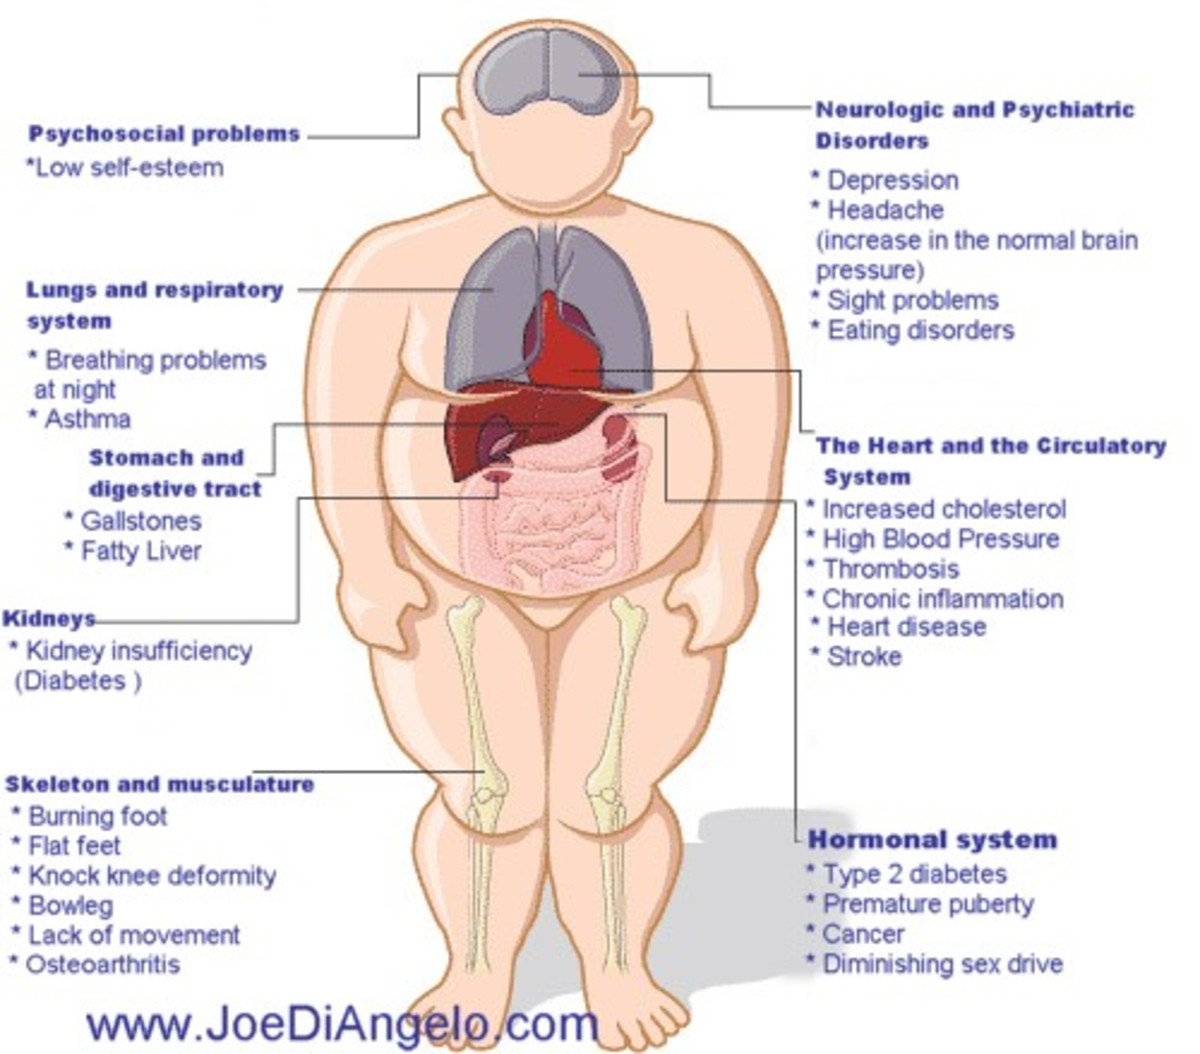 Anatomical clip art figure of an obese man detailing the various diseases that weight and inactivity can cause to the human body